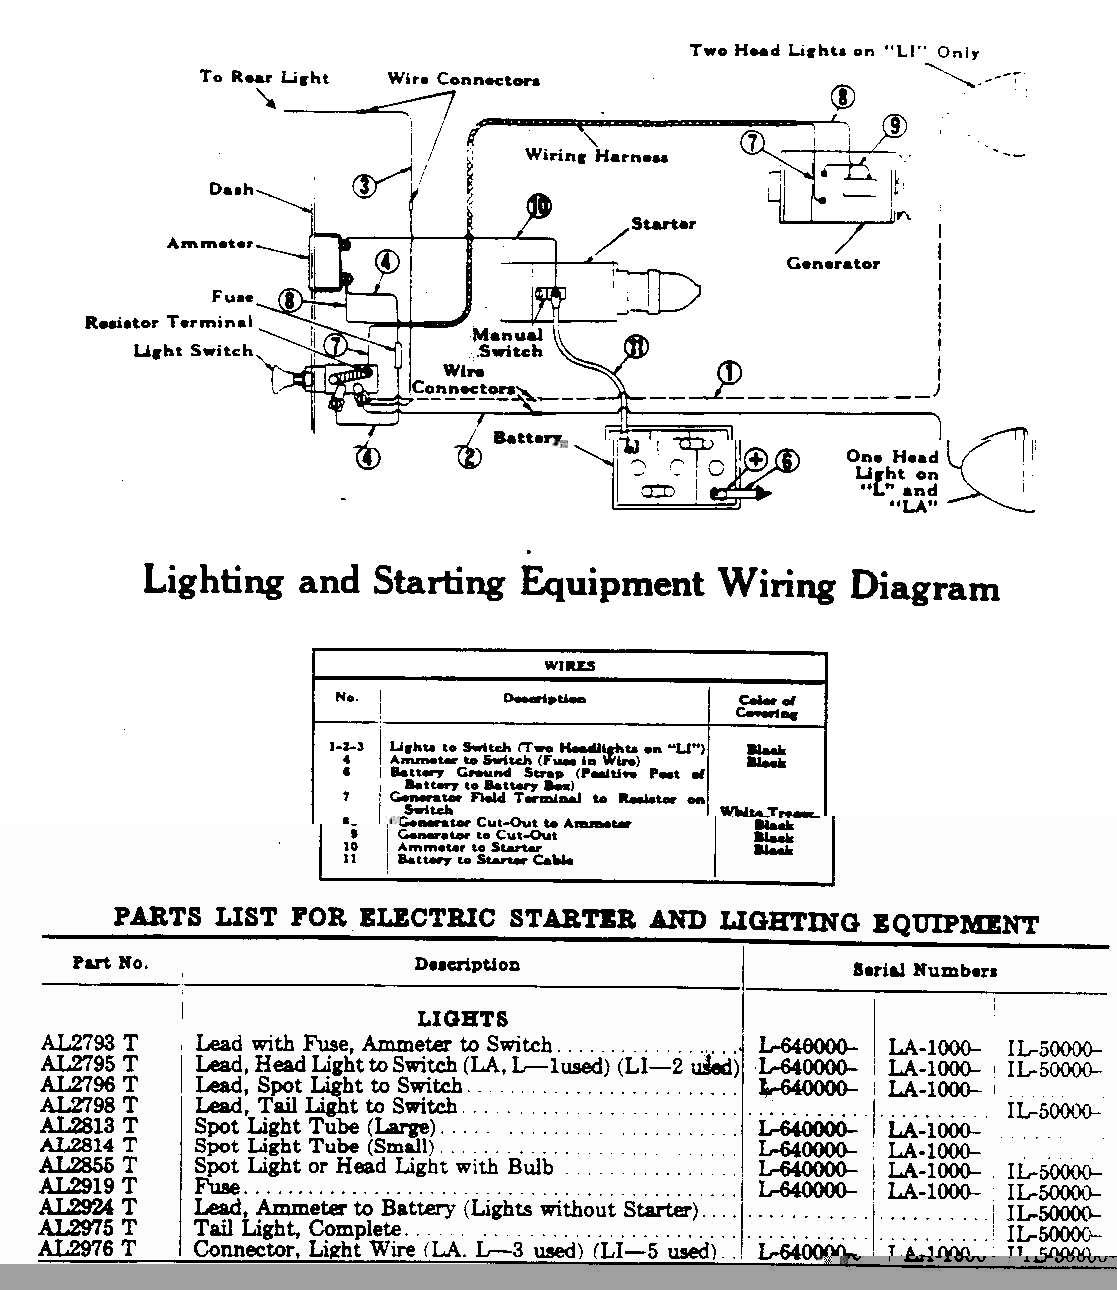 lwiring john deere b wiring diagram john deere z225 wiring diagram \u2022 free john deere model a wiring diagram at mifinder.co